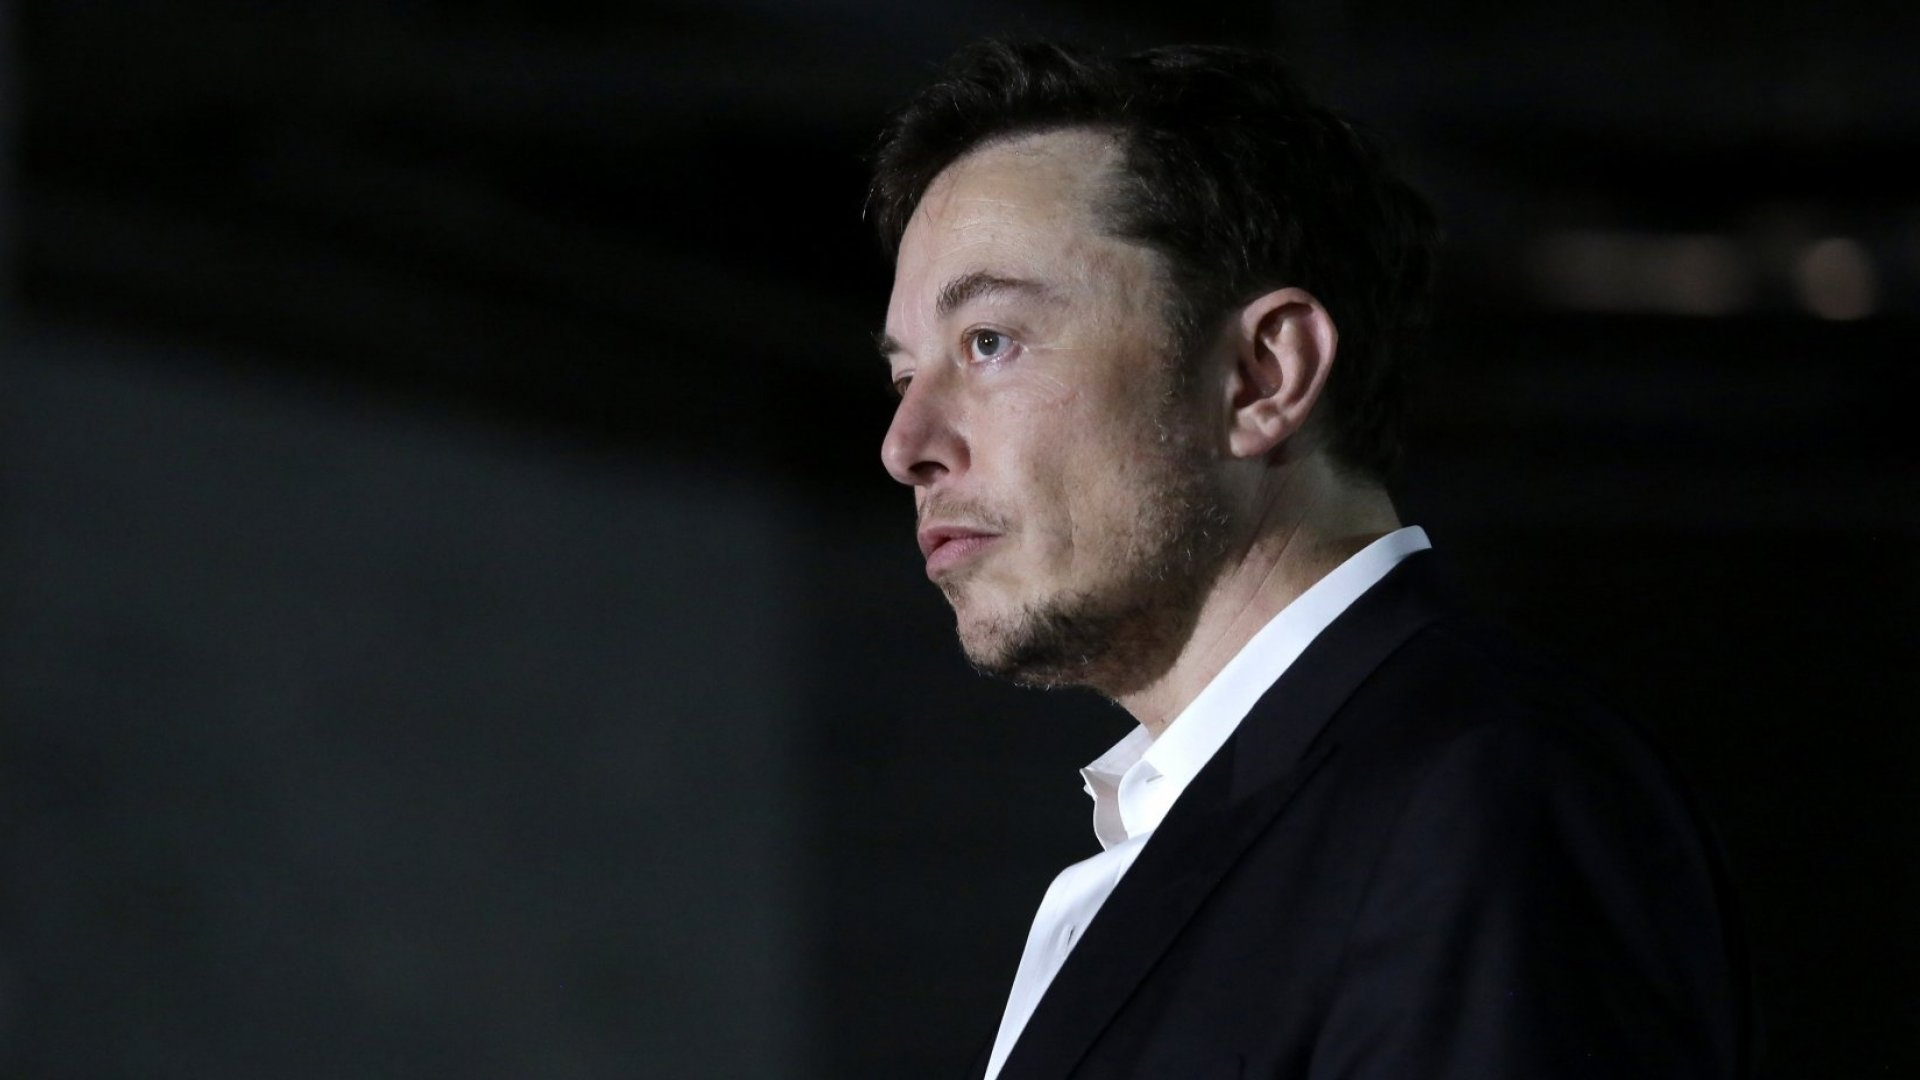 Elon Musk's Twitter Account Can Teach Business Owners These 3 Valuable Lessons